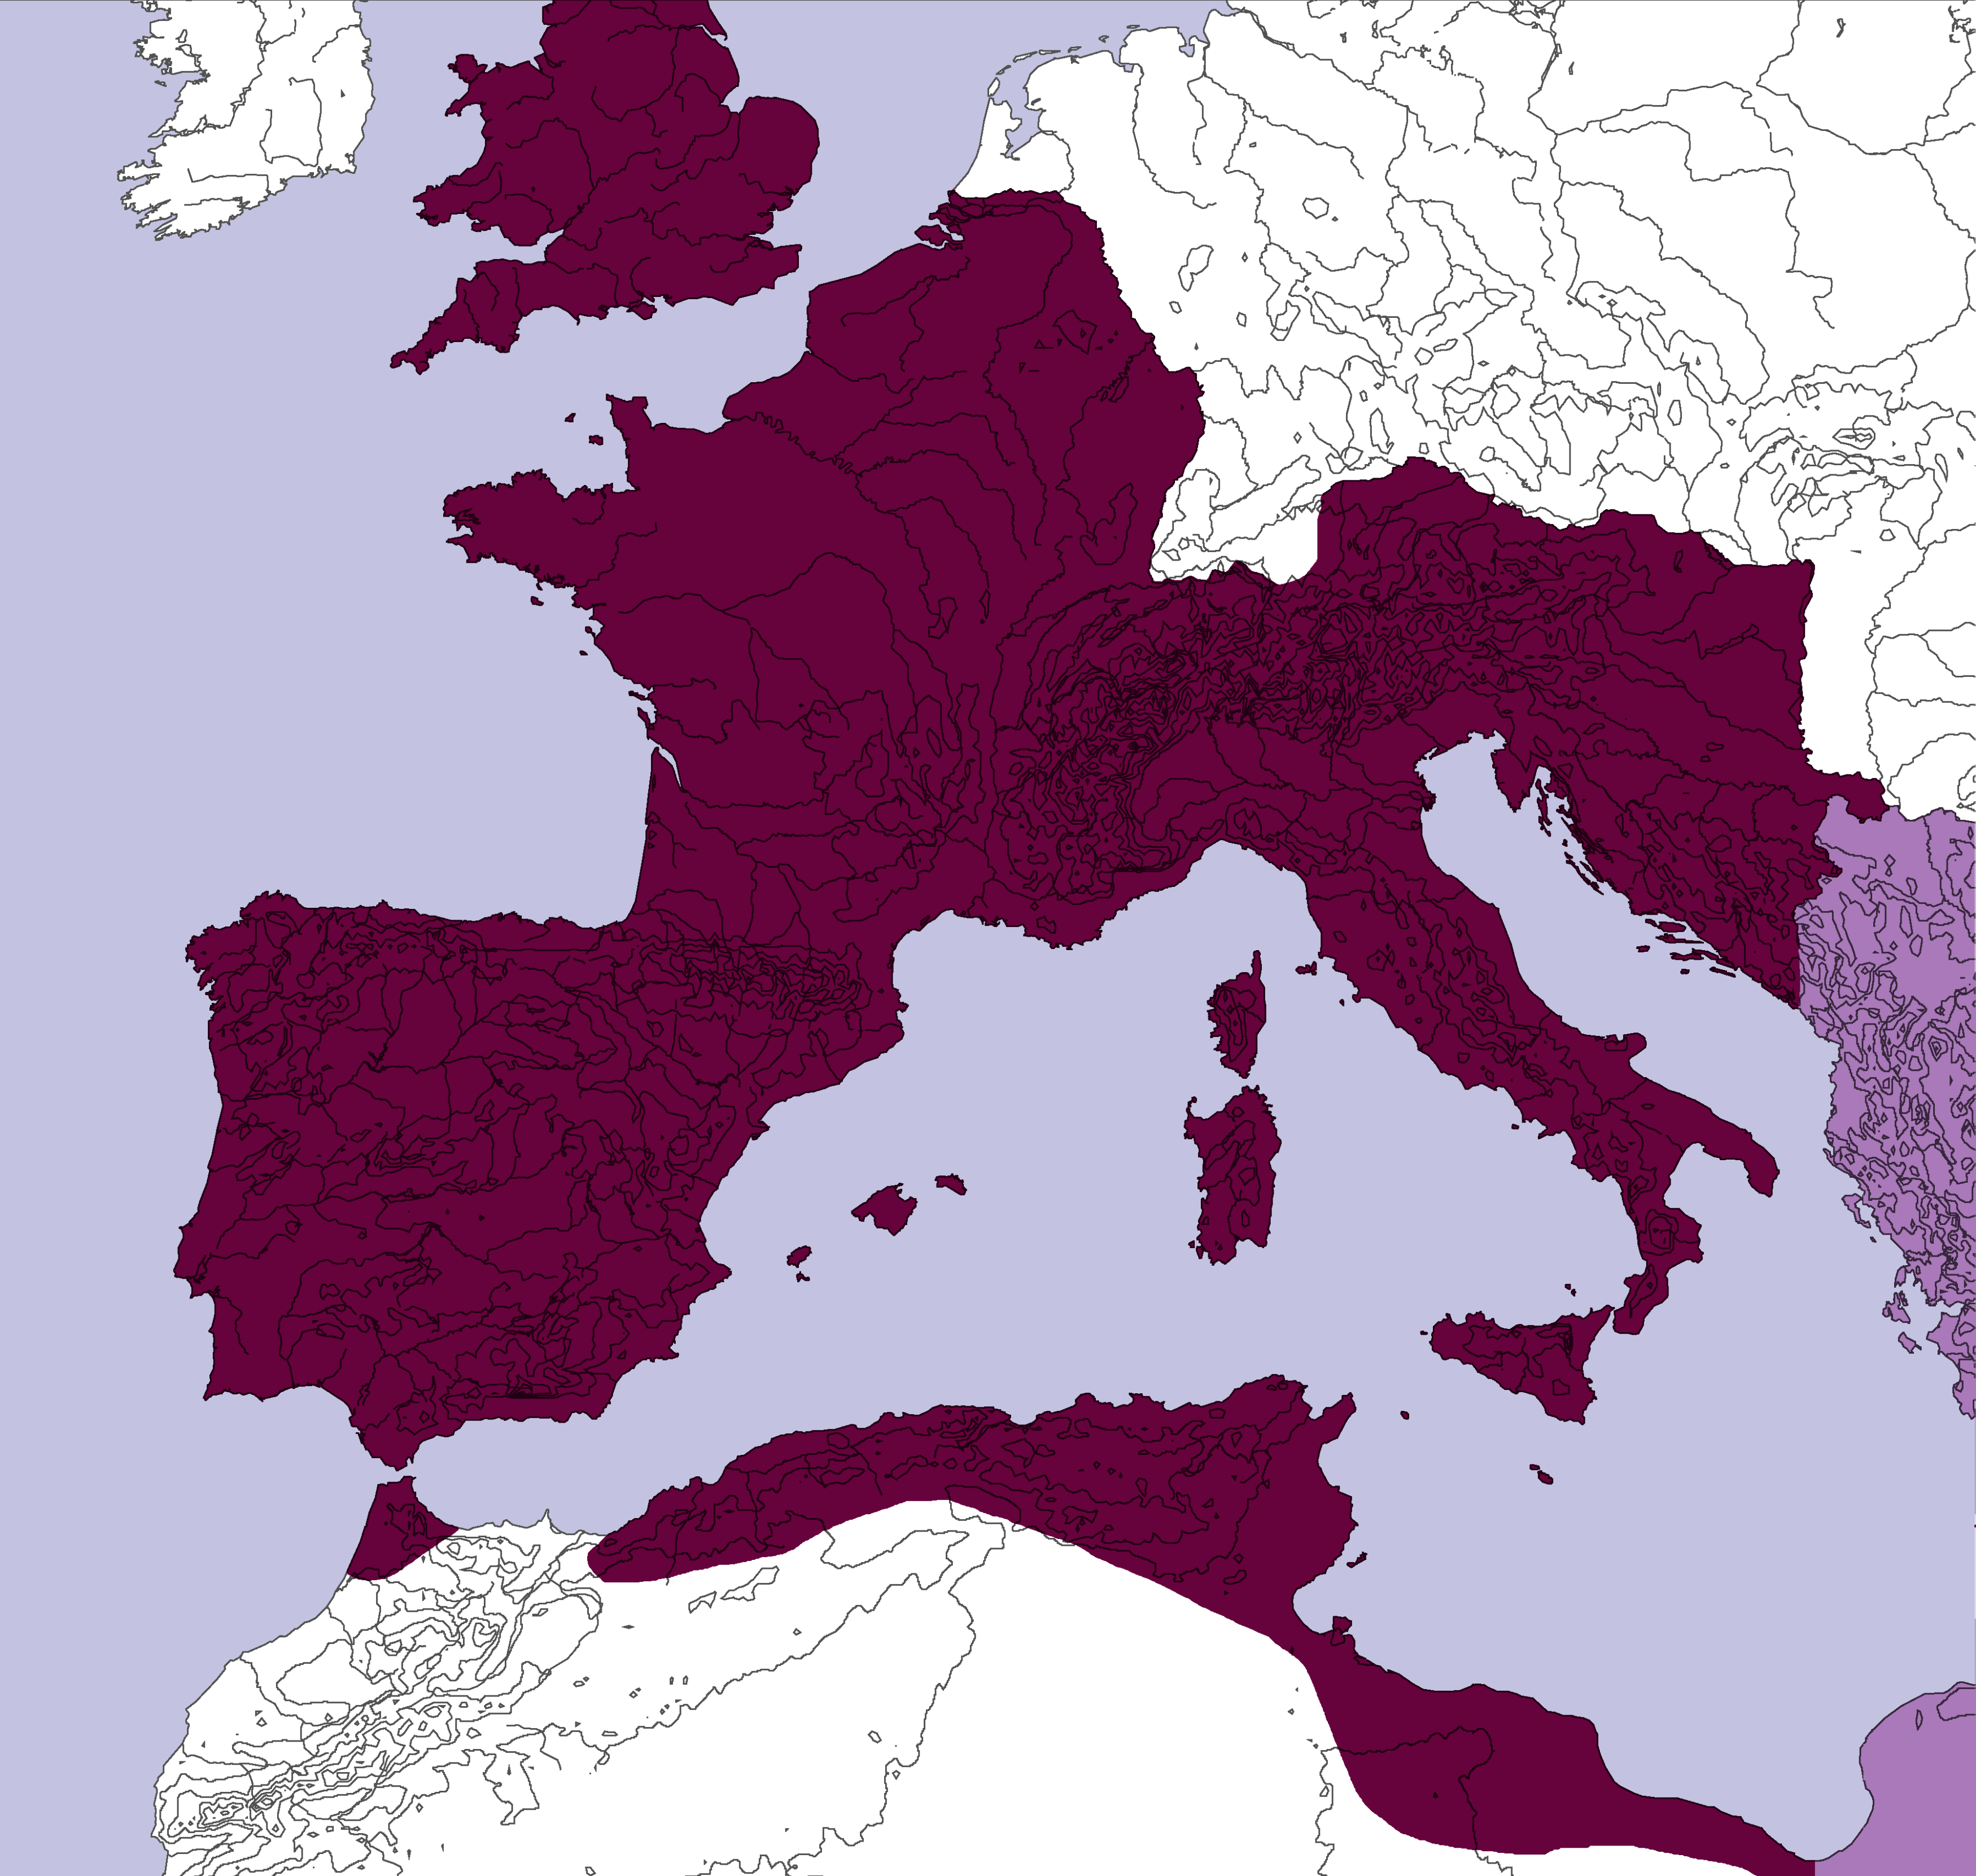 File:Western Roman Empire 3500.png   Wikimedia Commons